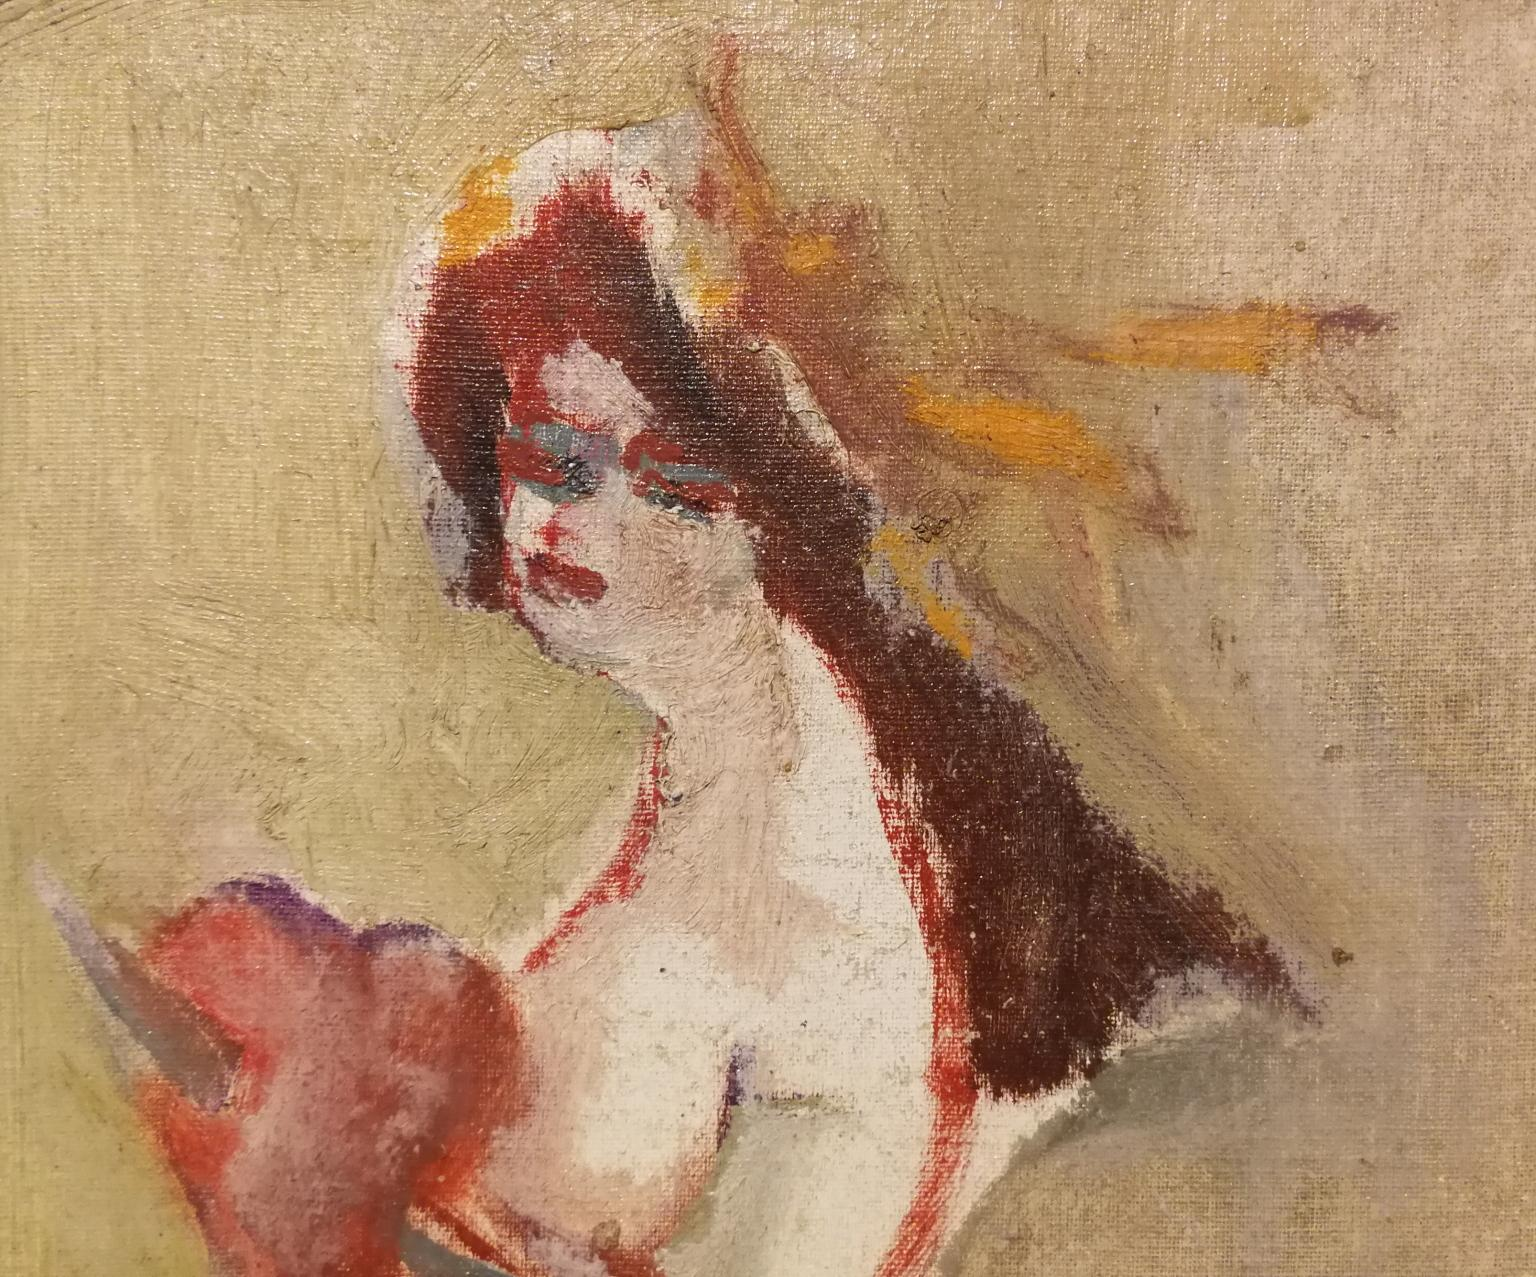 Signed M Maccari Post Impressionist Painting dated 1958 oil canvas cardboard